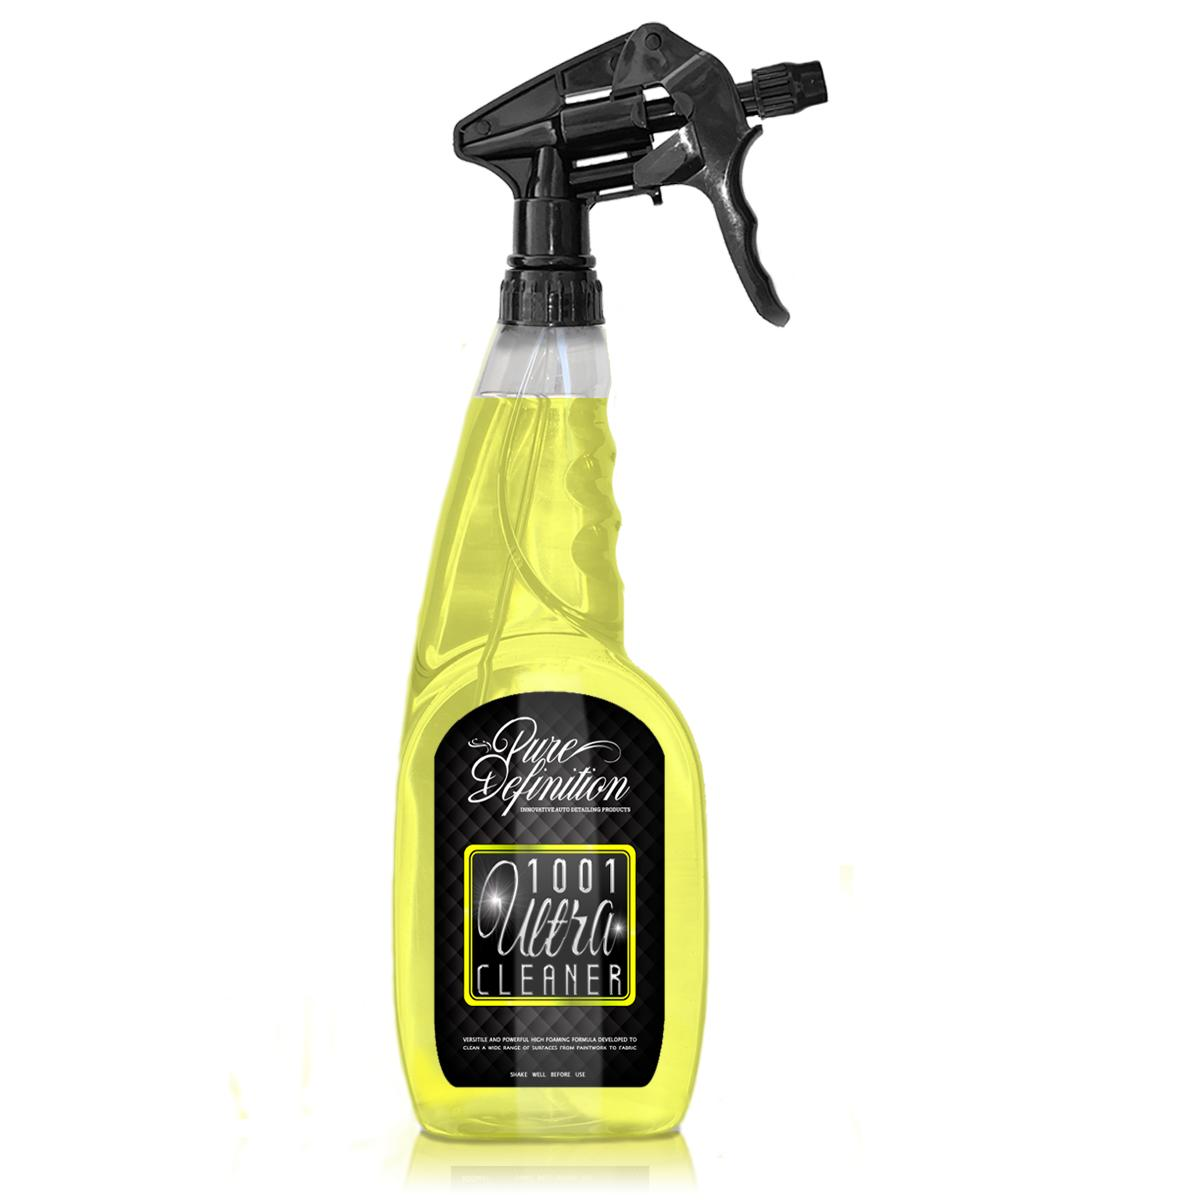 1001-ultra-cleaner-800ml.jpg